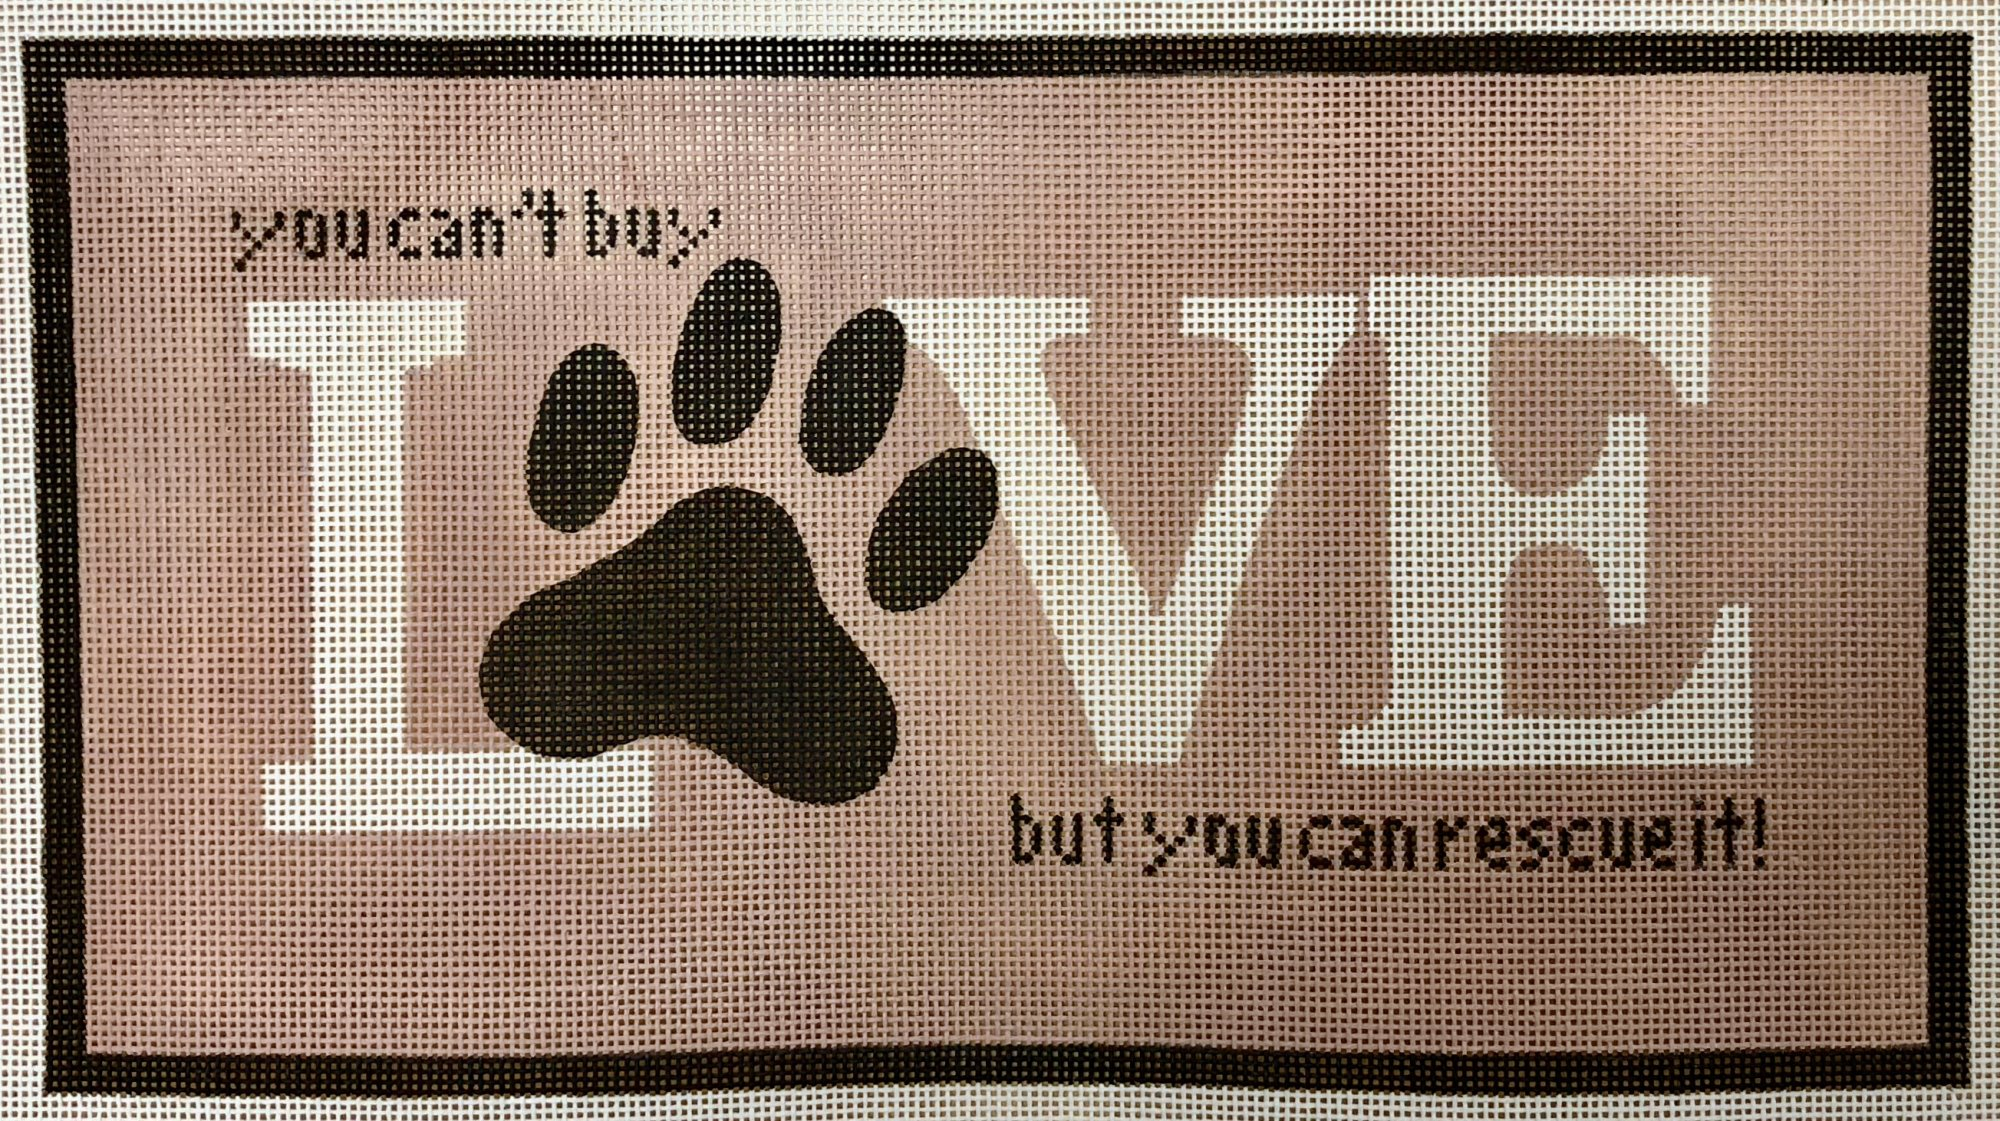 you can't buy love...